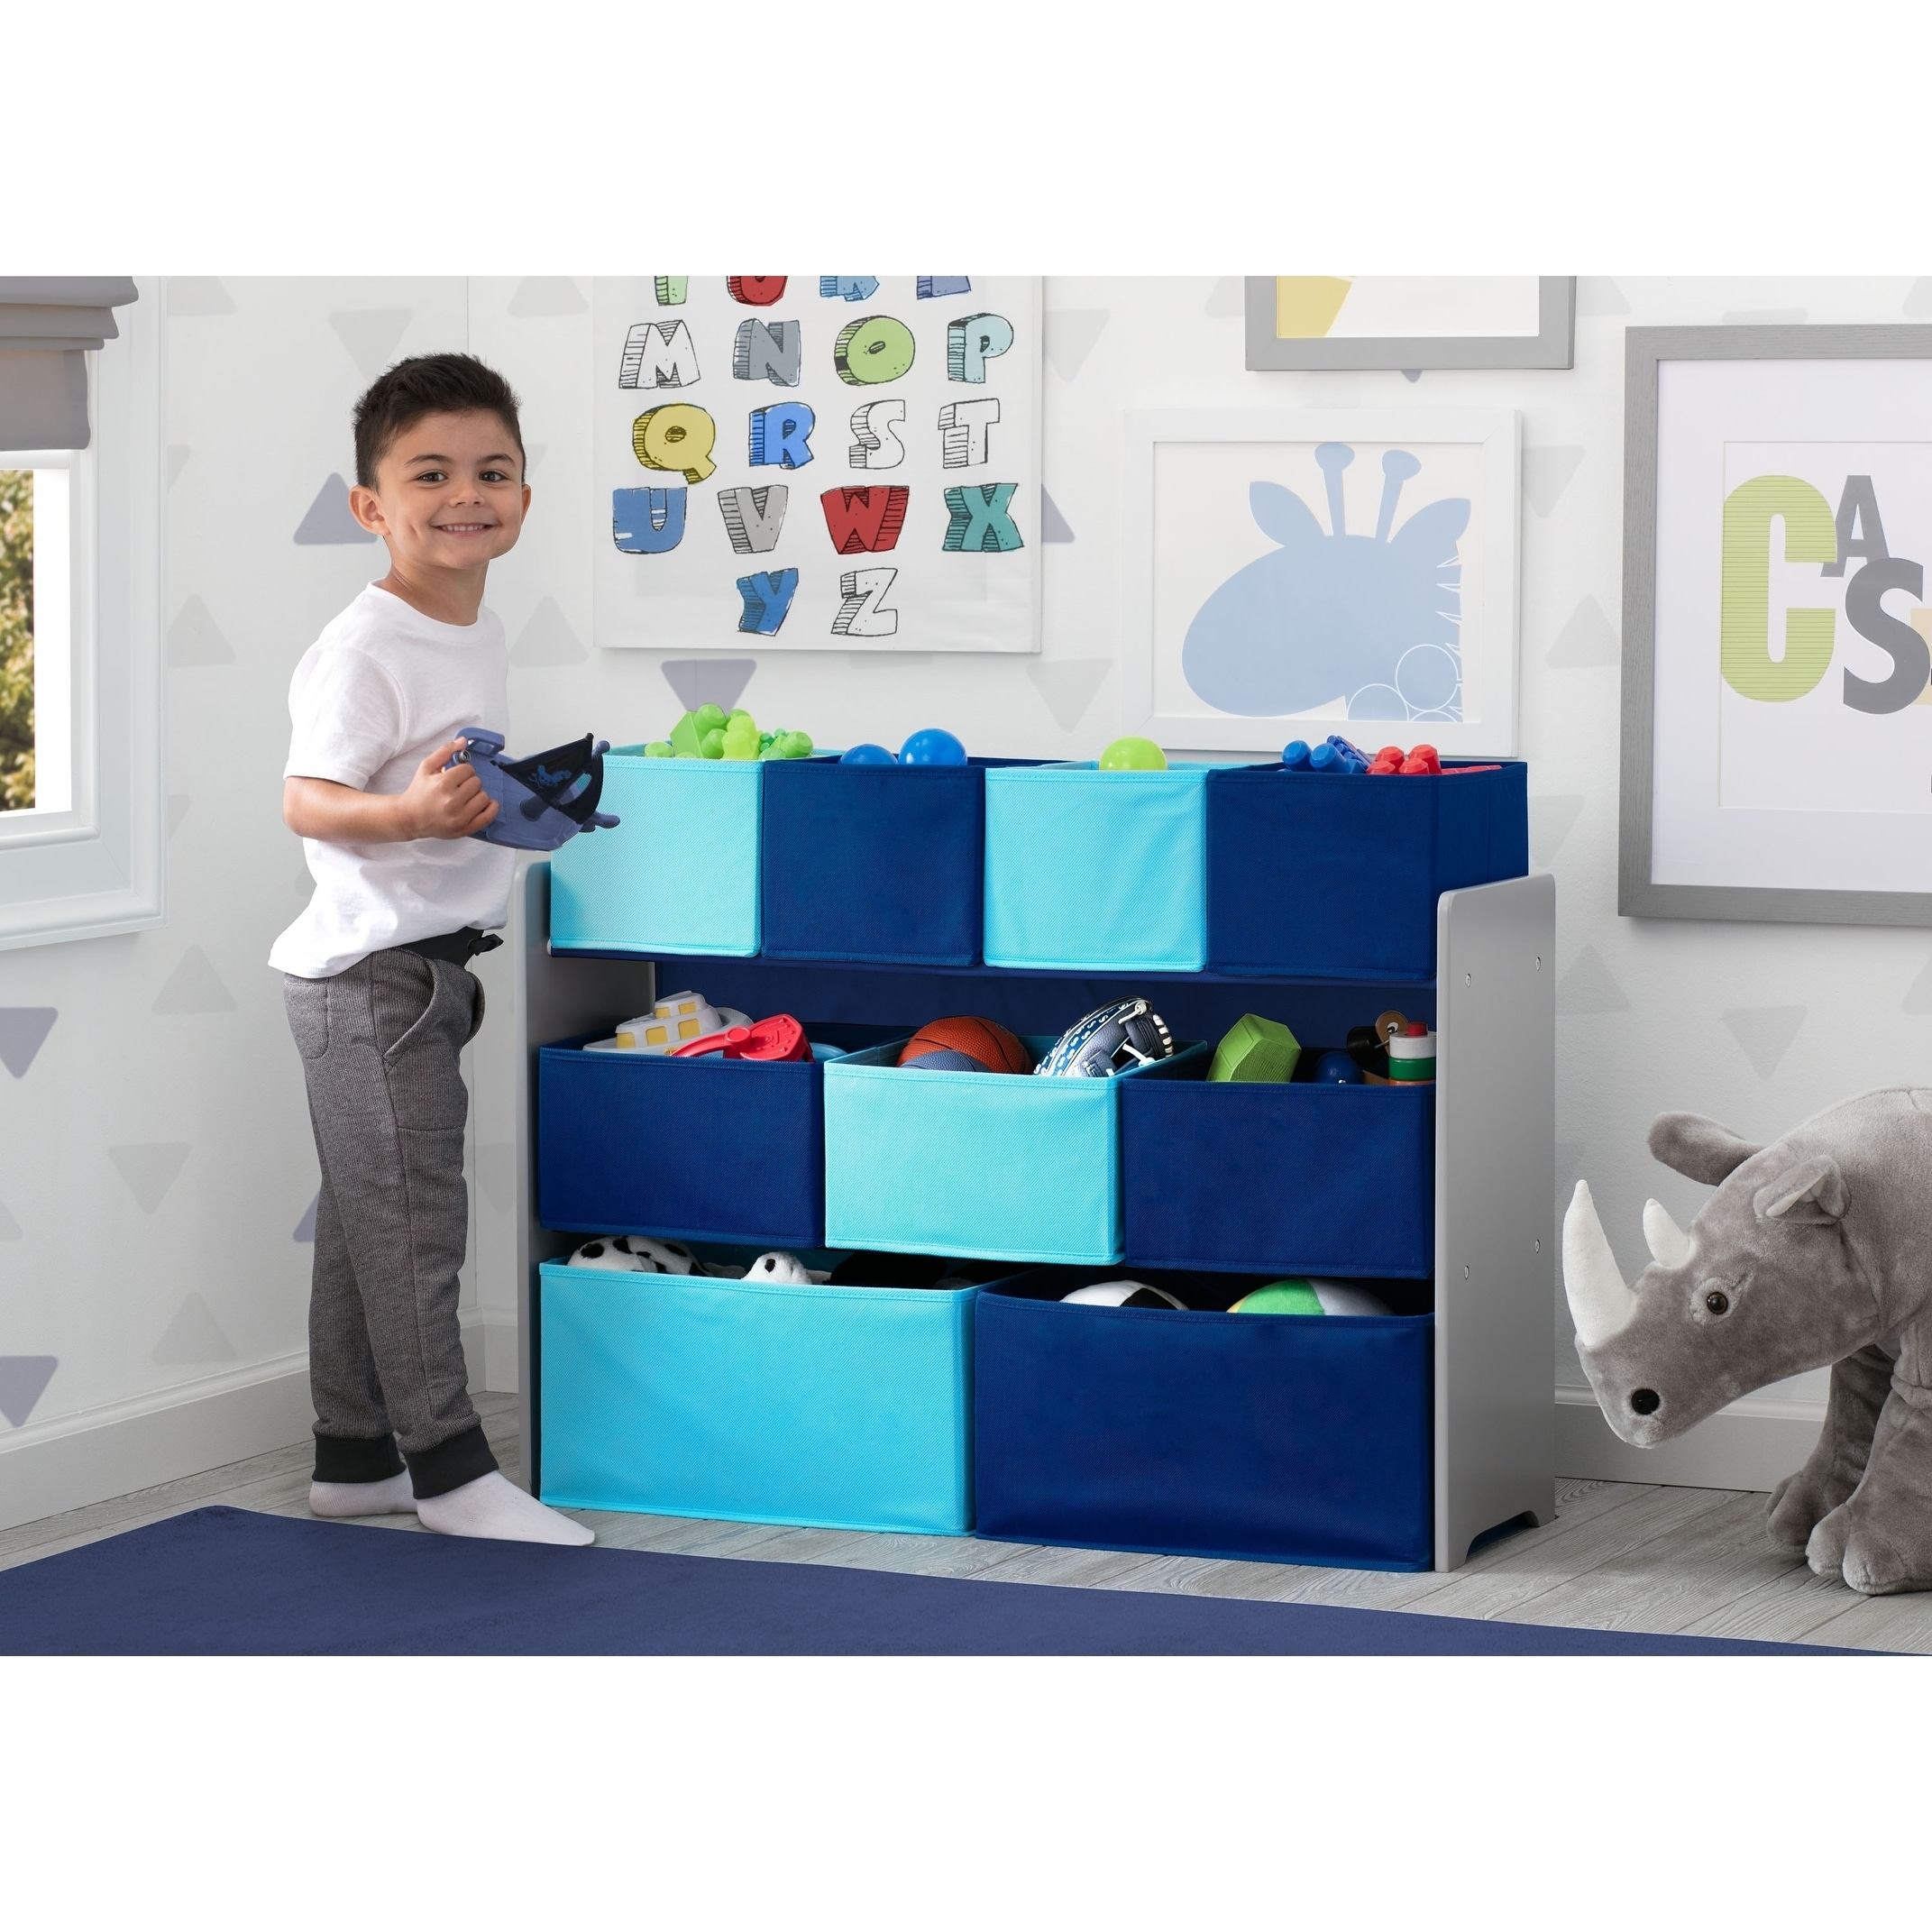 Buy Toy Boxes and Organizers Kids\' Storage & Toy Boxes Online at ...